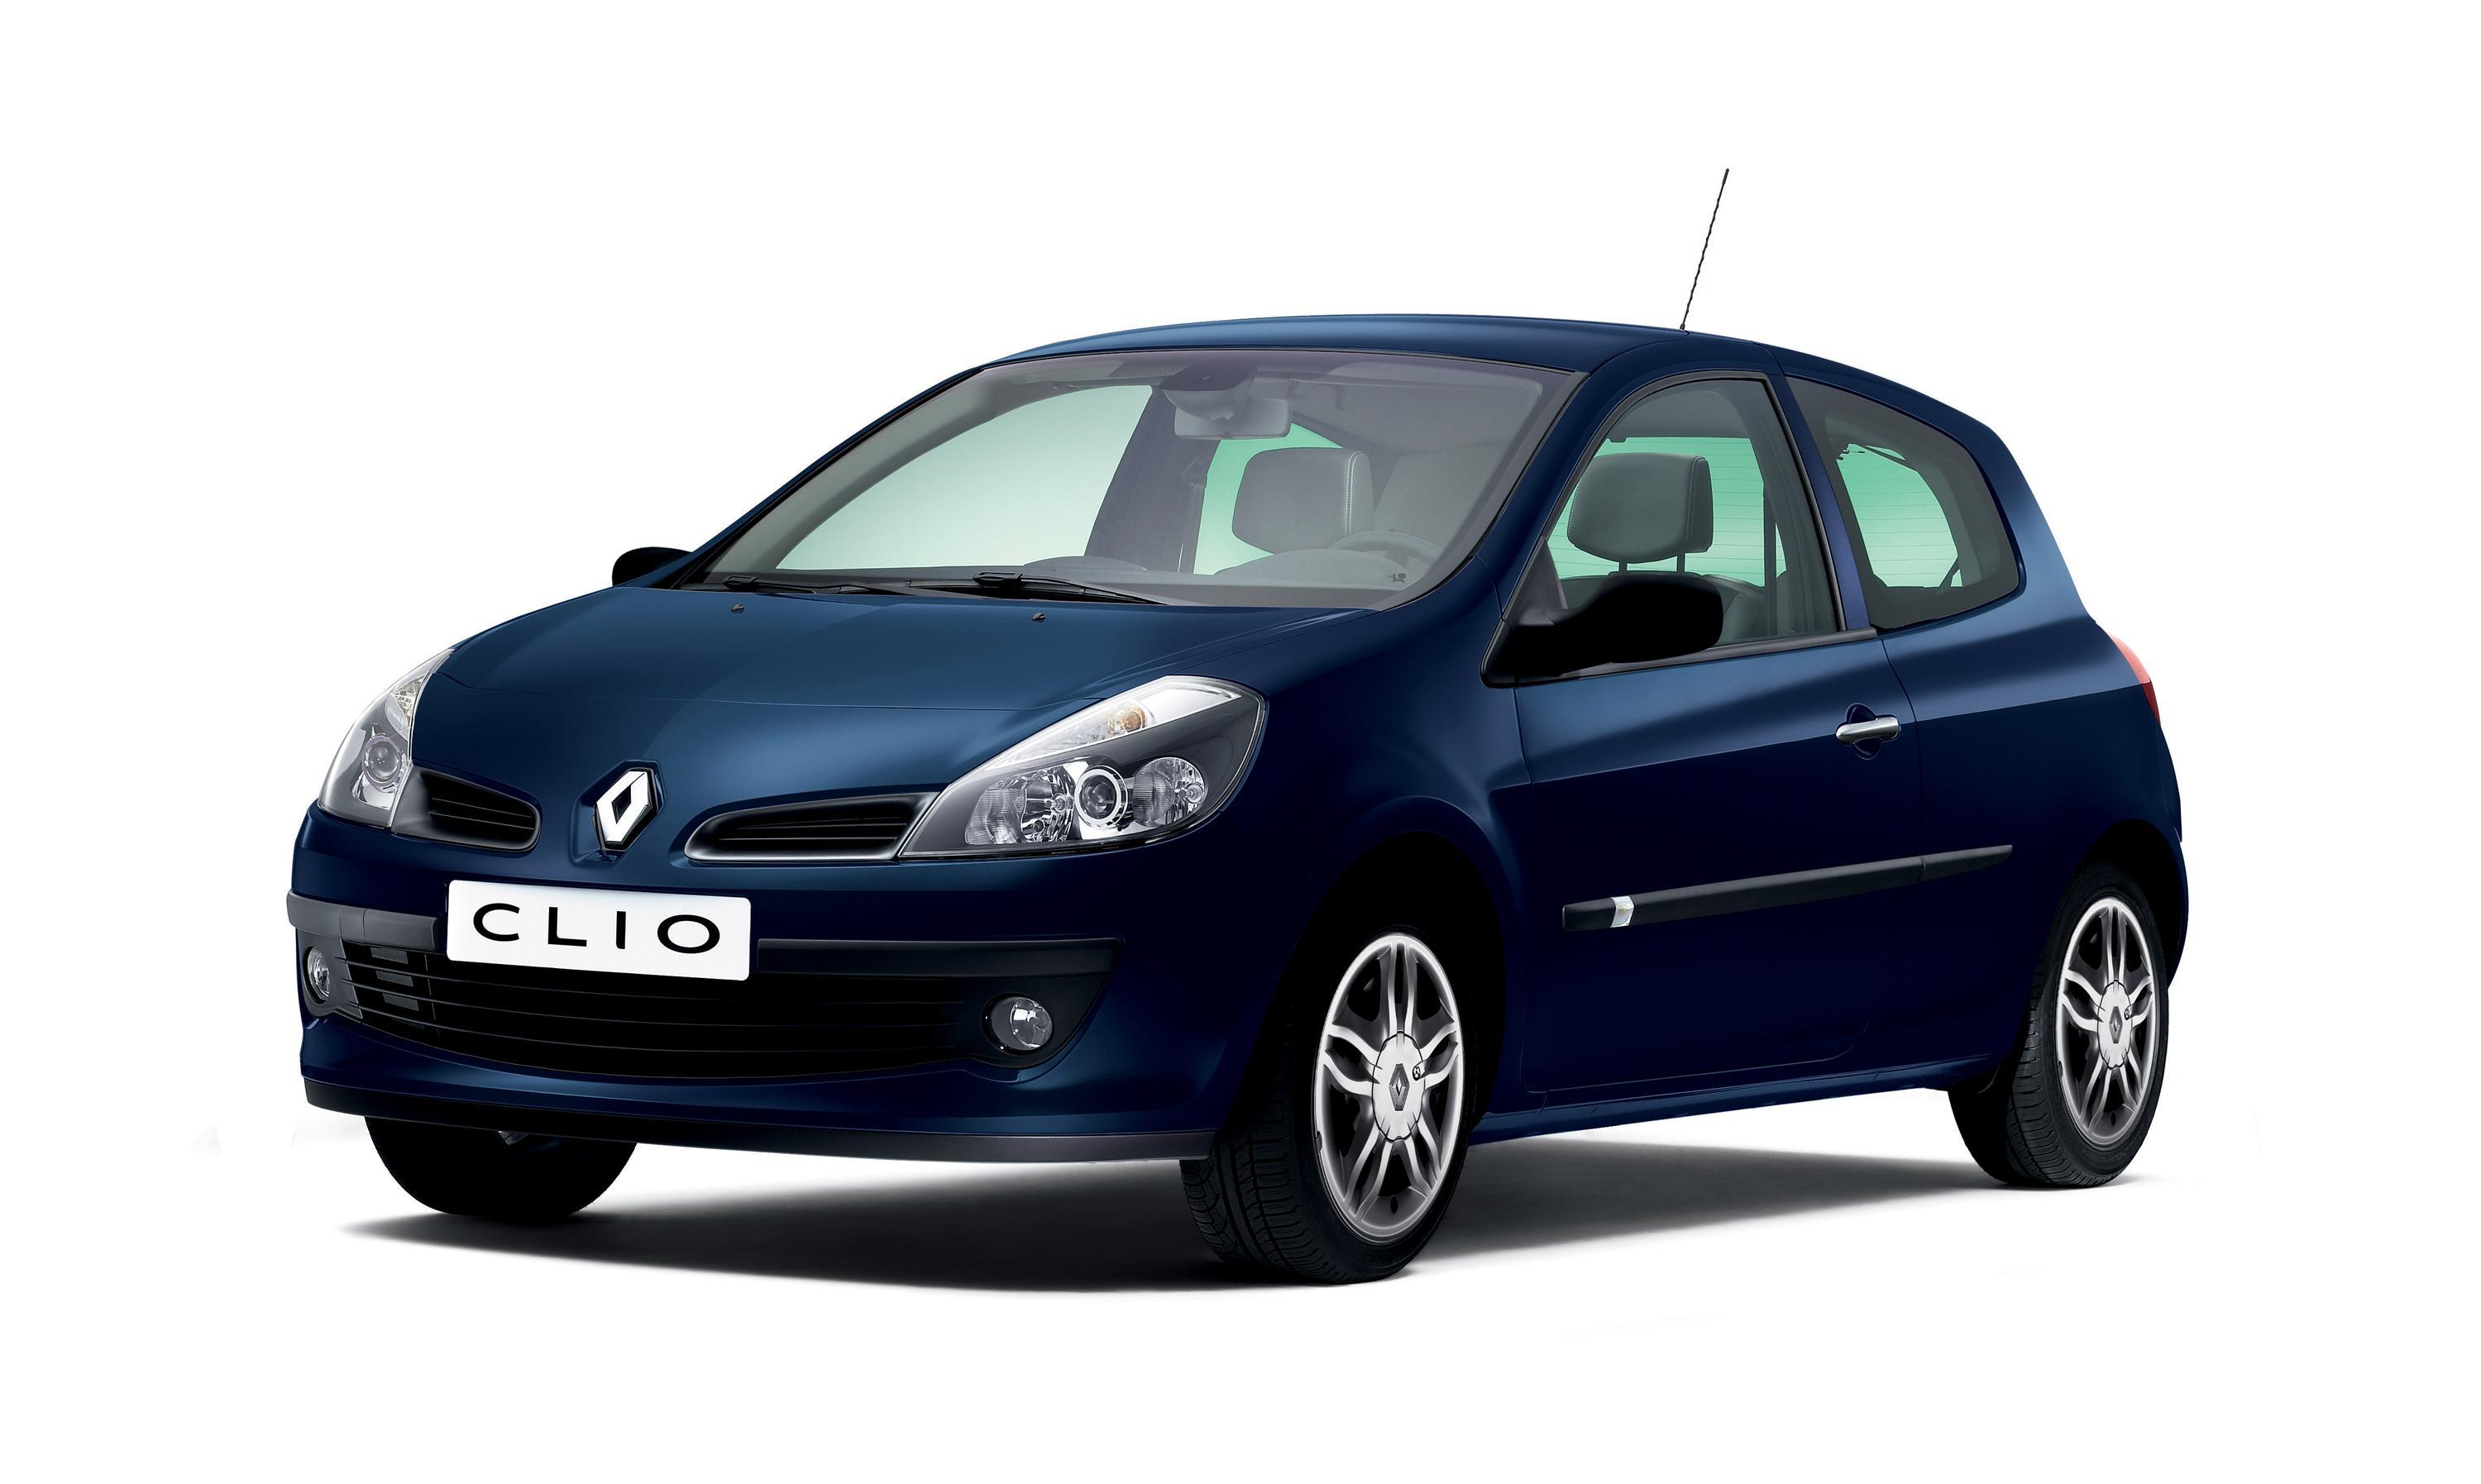 Car Engines For Sale >> 2007 Renault Clio Extreme | Top Speed